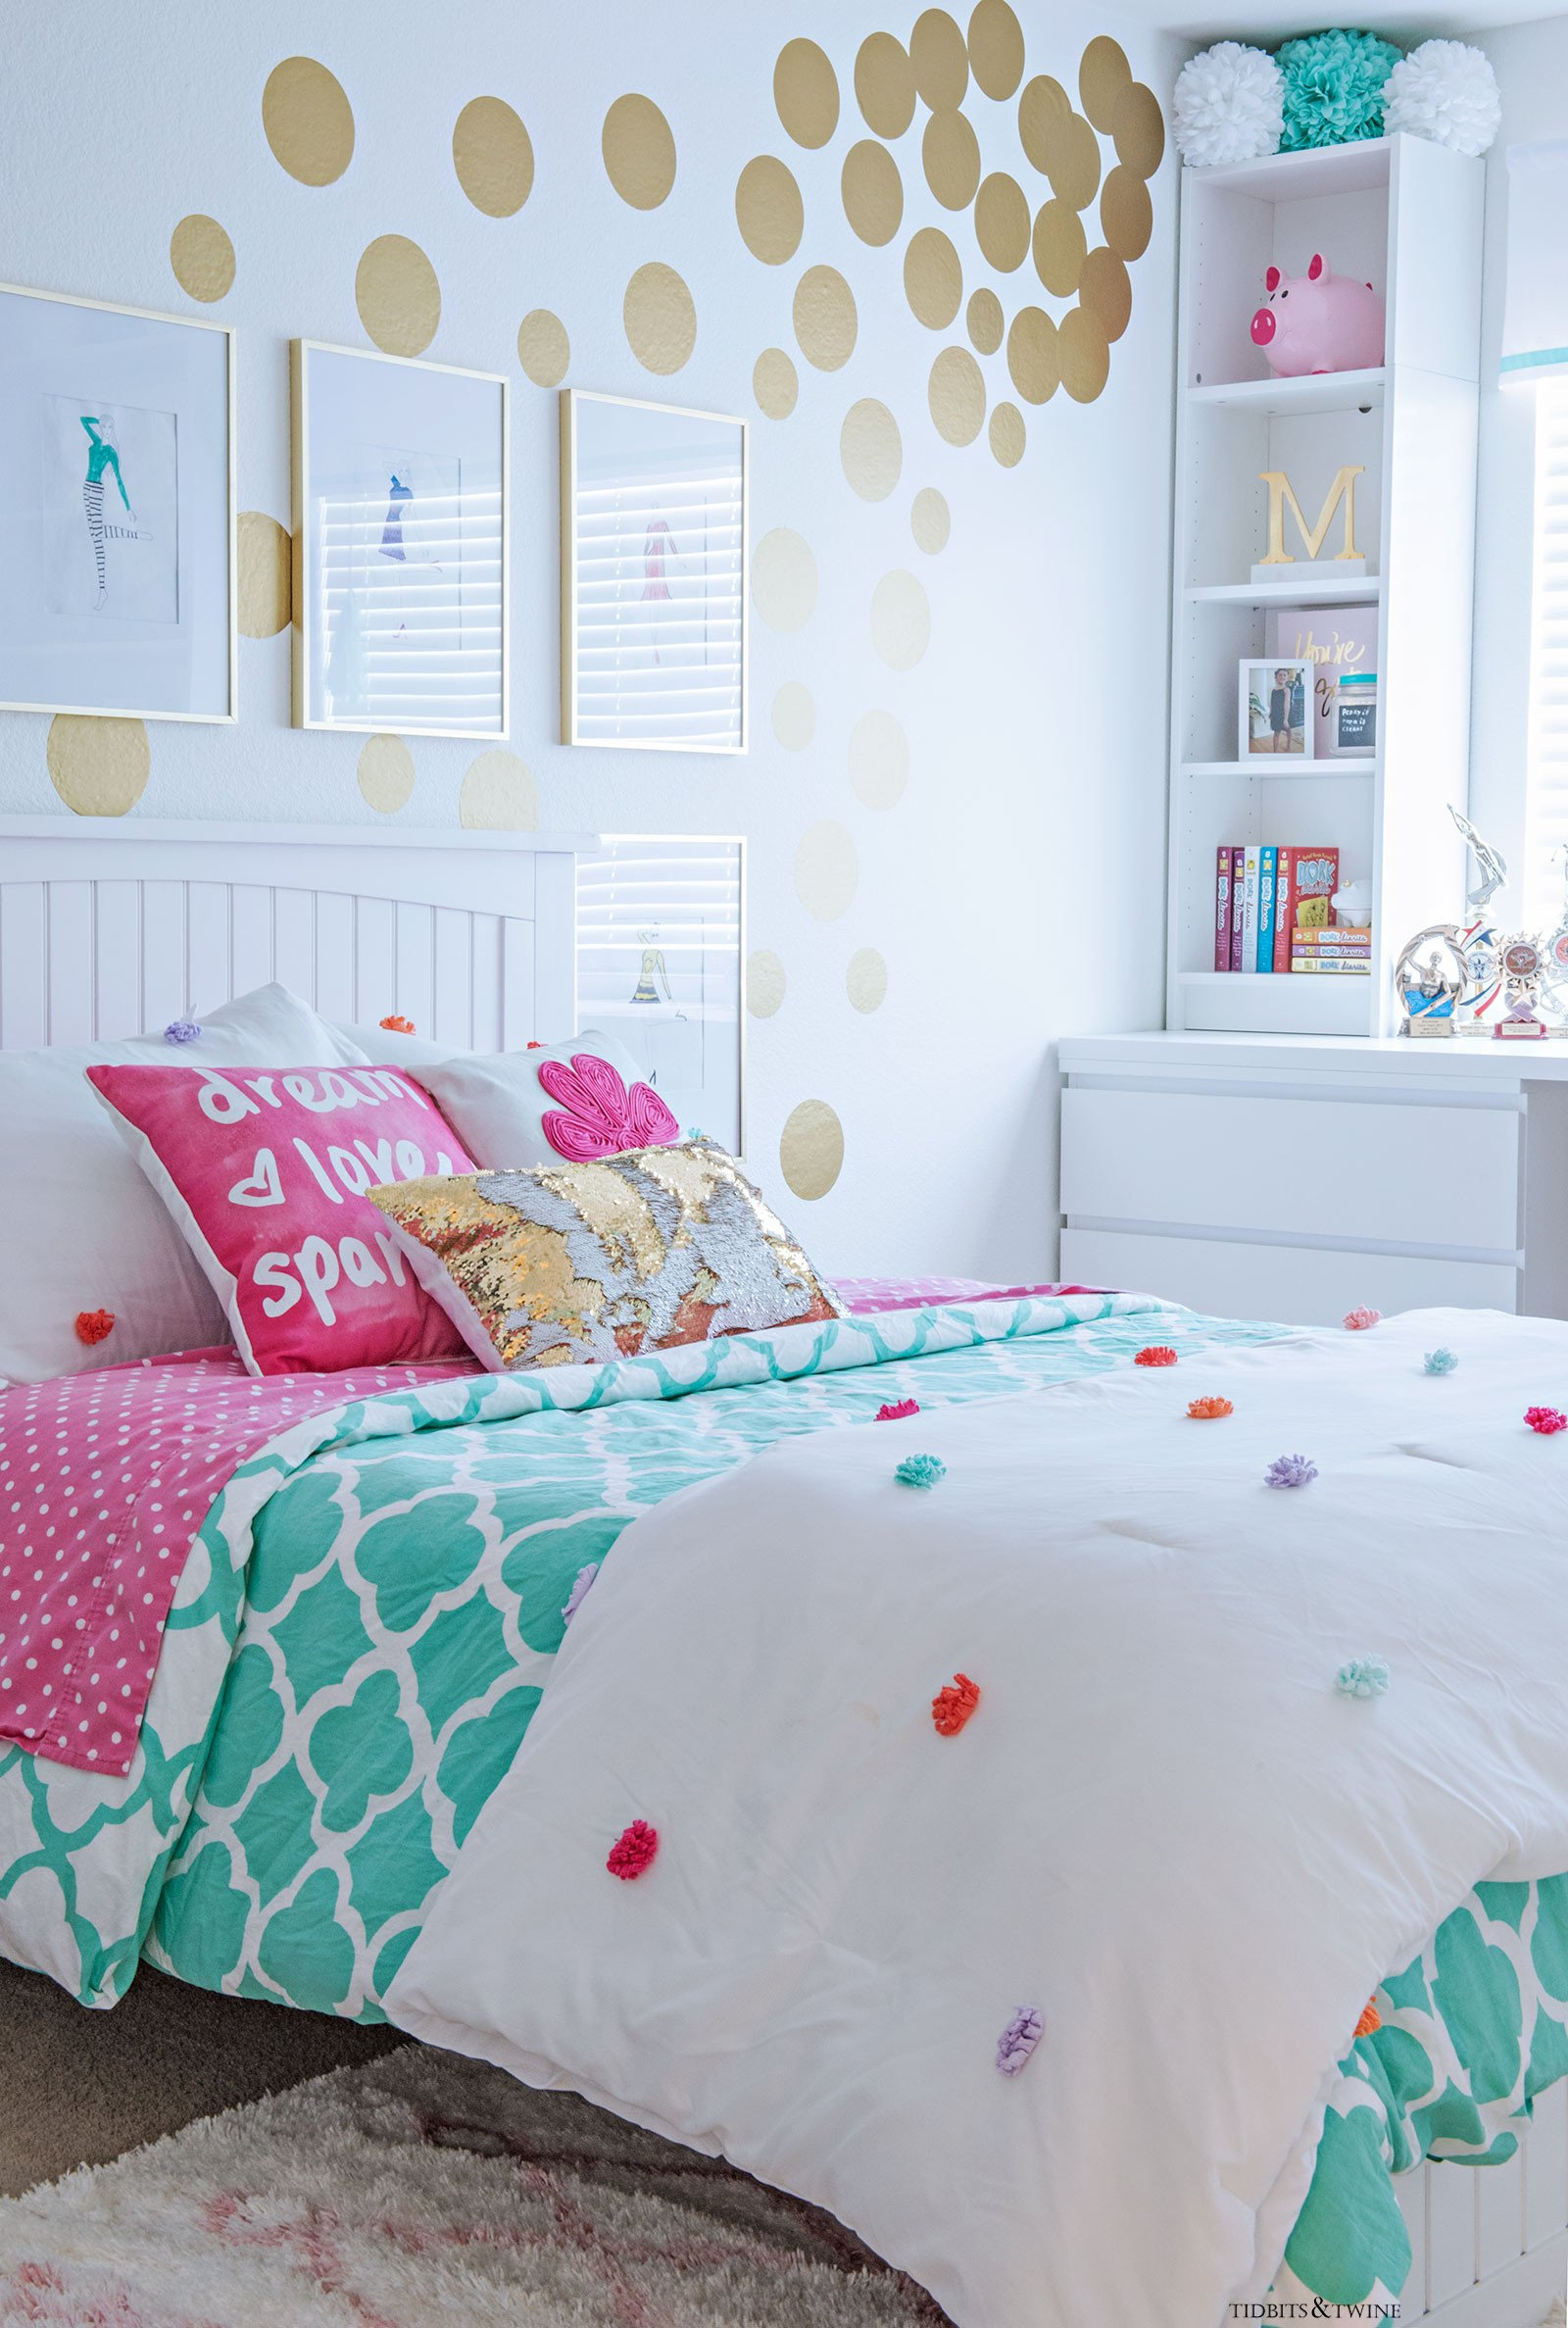 Room Decor Ideas for Tweens New Tween Girl S Bedroom Makeover Reveal Tidbits&twine